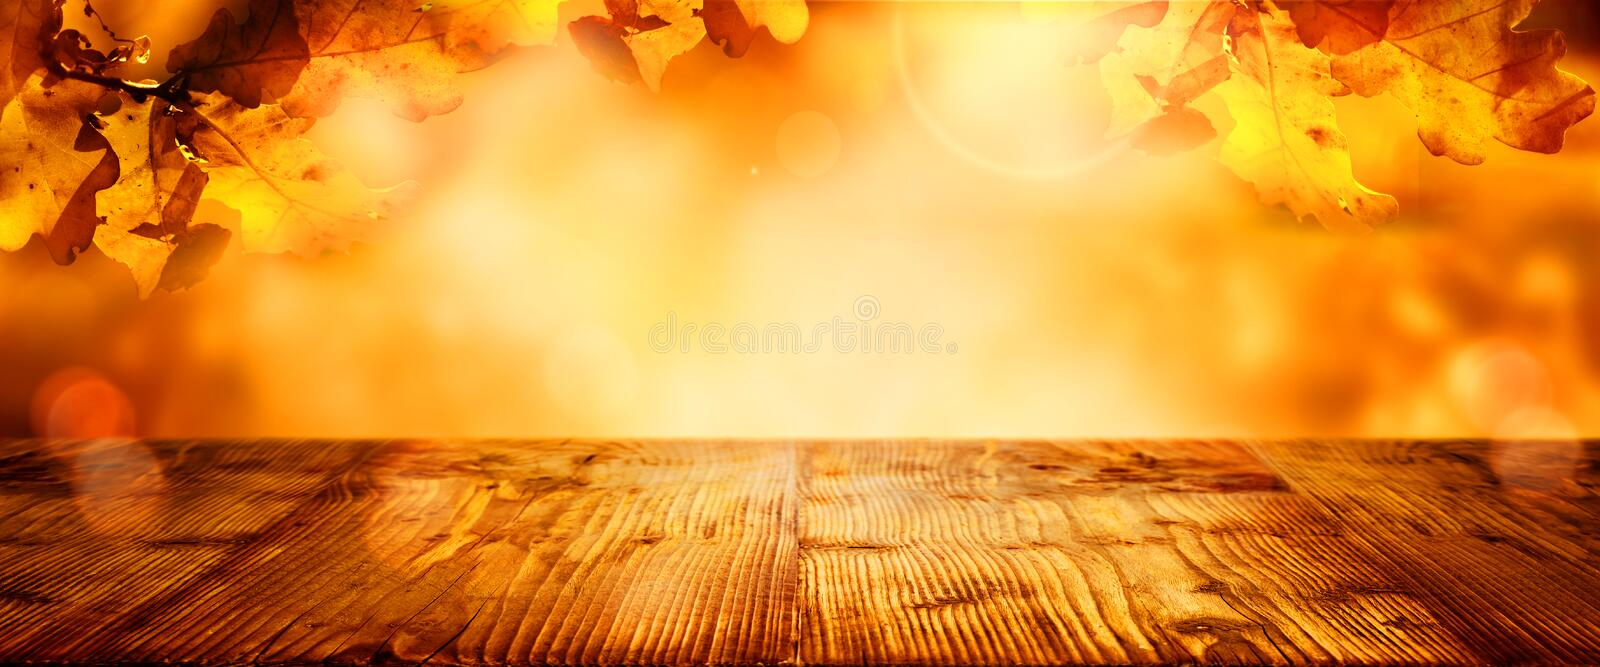 Wooden table with colorful autumn leaves royalty free stock photo